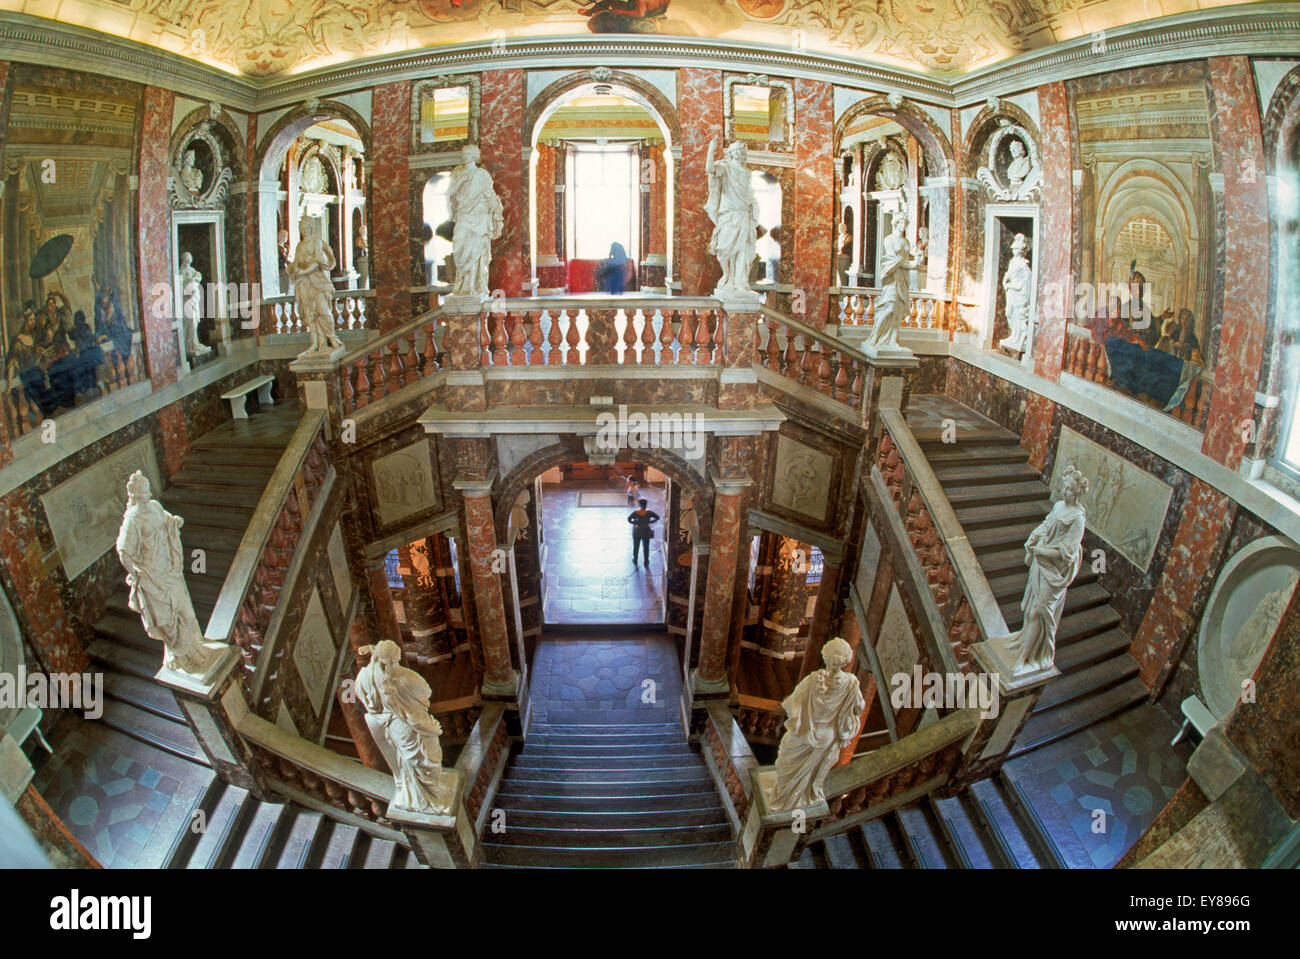 Interior Design Home Theater Baroque Interior Decorations At Drottningholm Castle Near